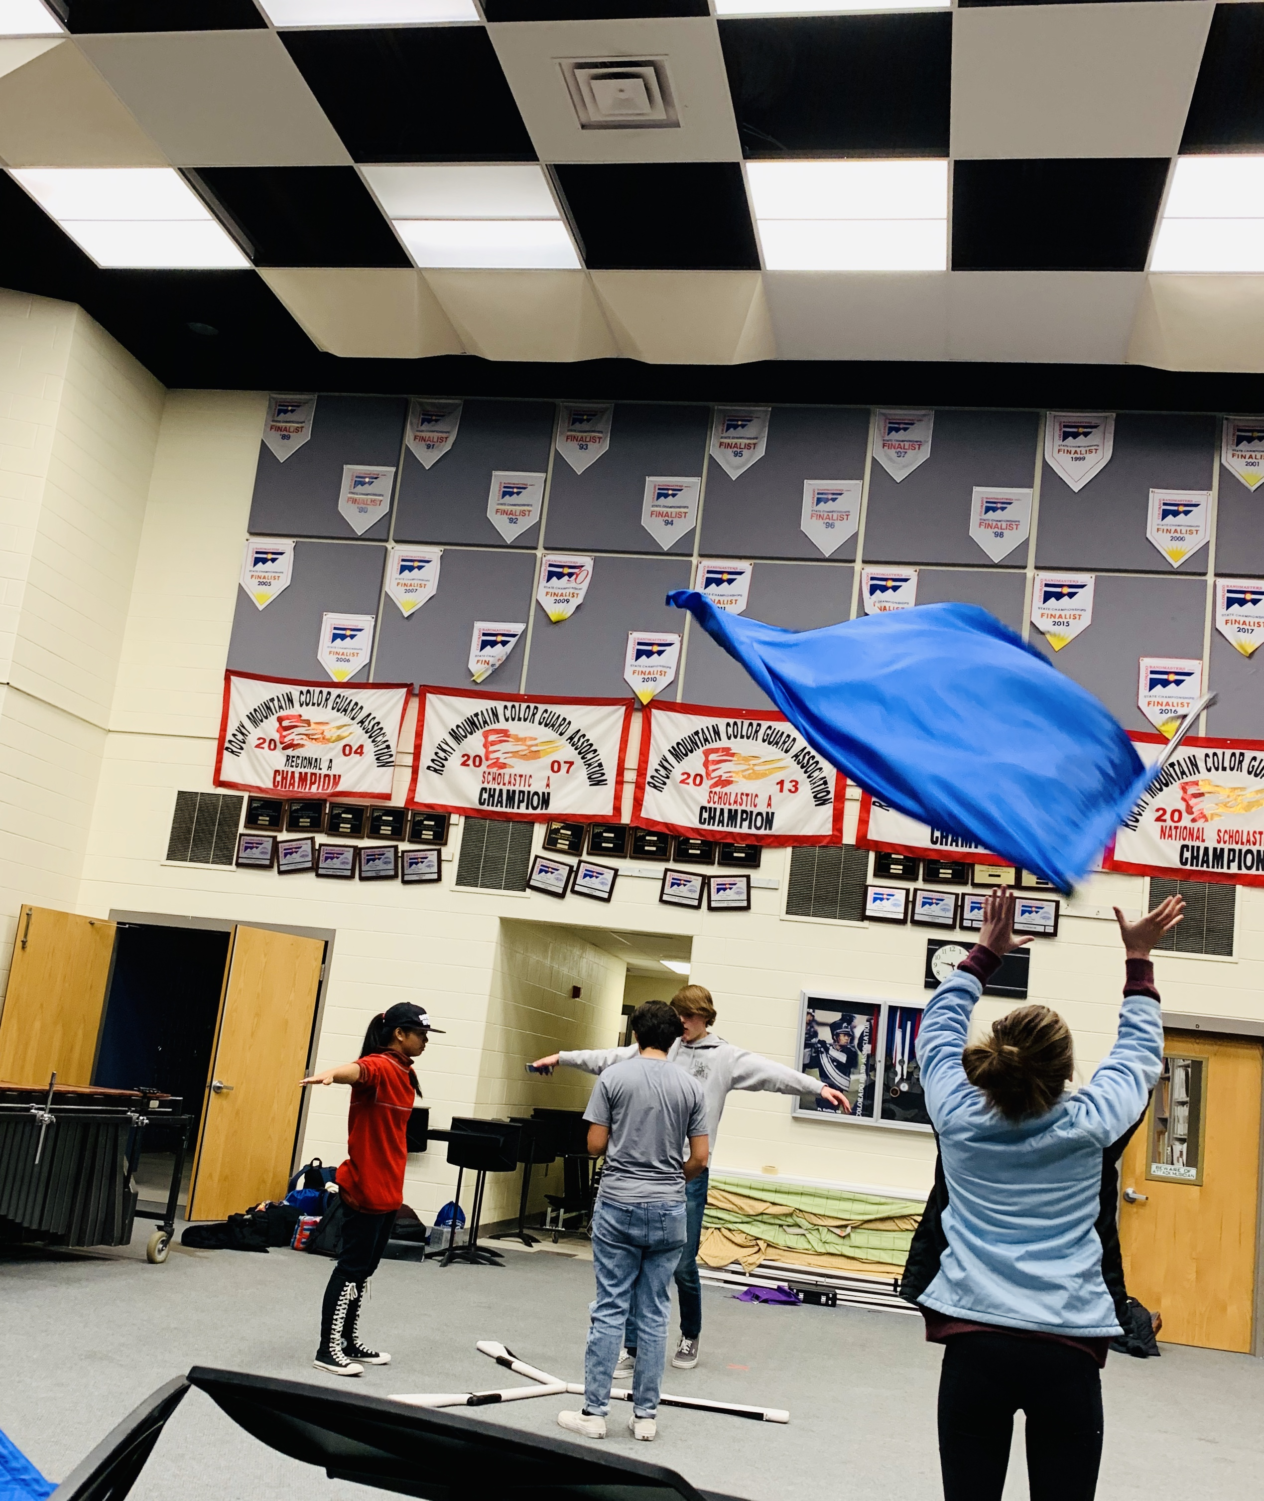 The color guard practices during Kadet Time.